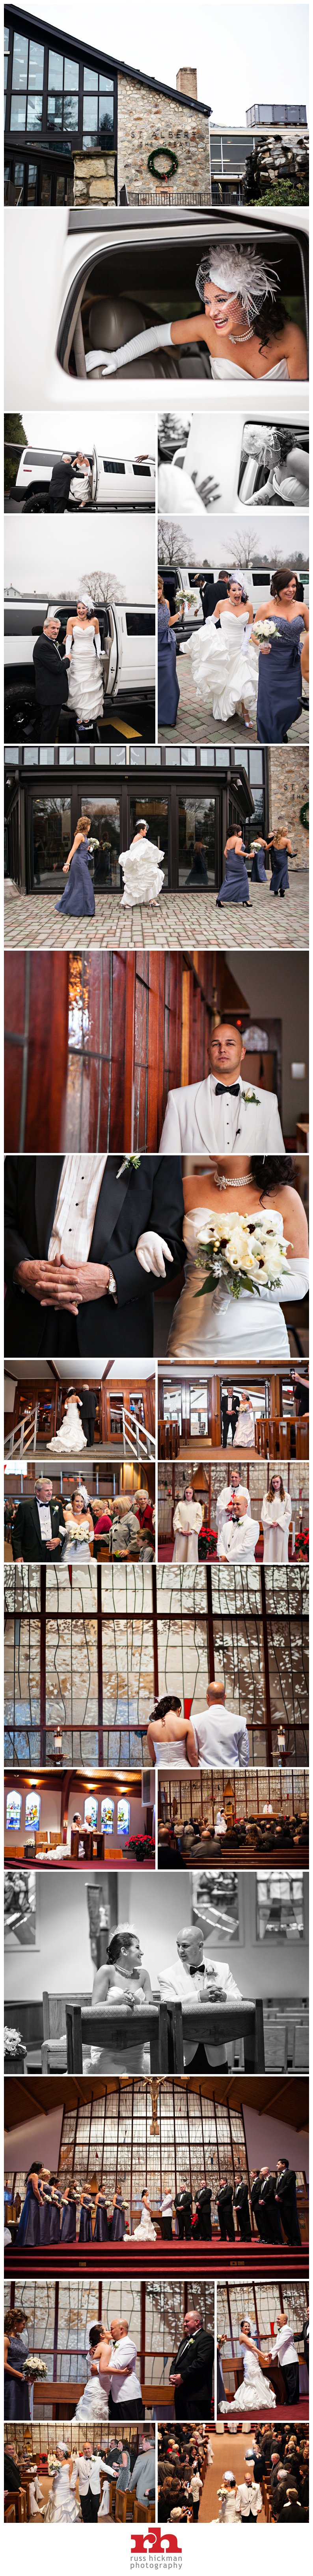 Philadelphia Wedding Photographer MMWB0003